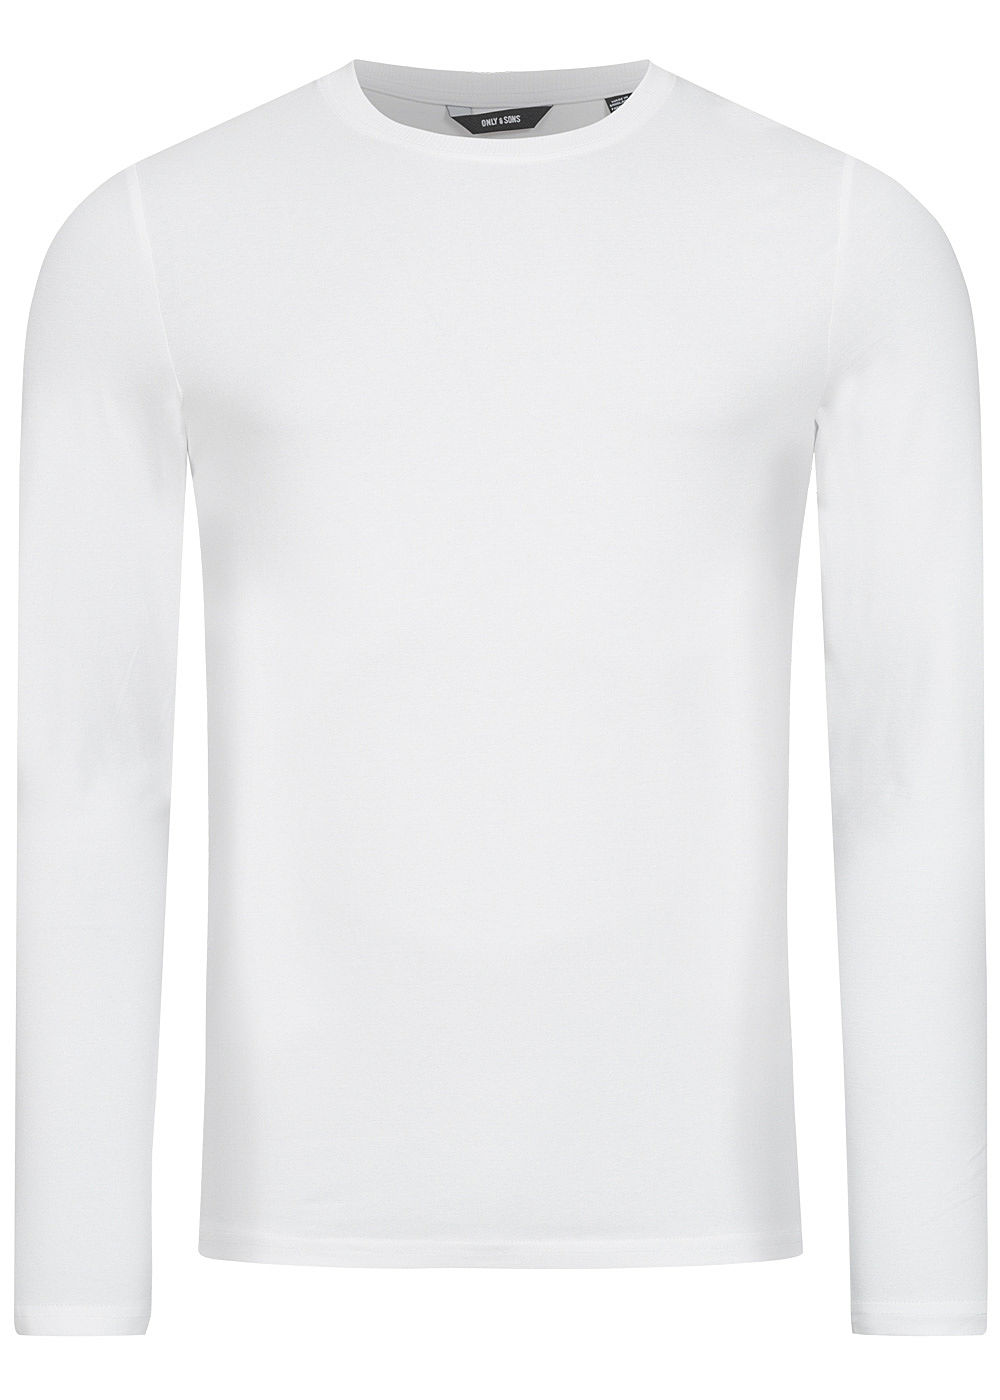 ONLY & SONS Herren NOOS Basic Longsleeve Slim Fit weiss - Art.-Nr.: 20031336